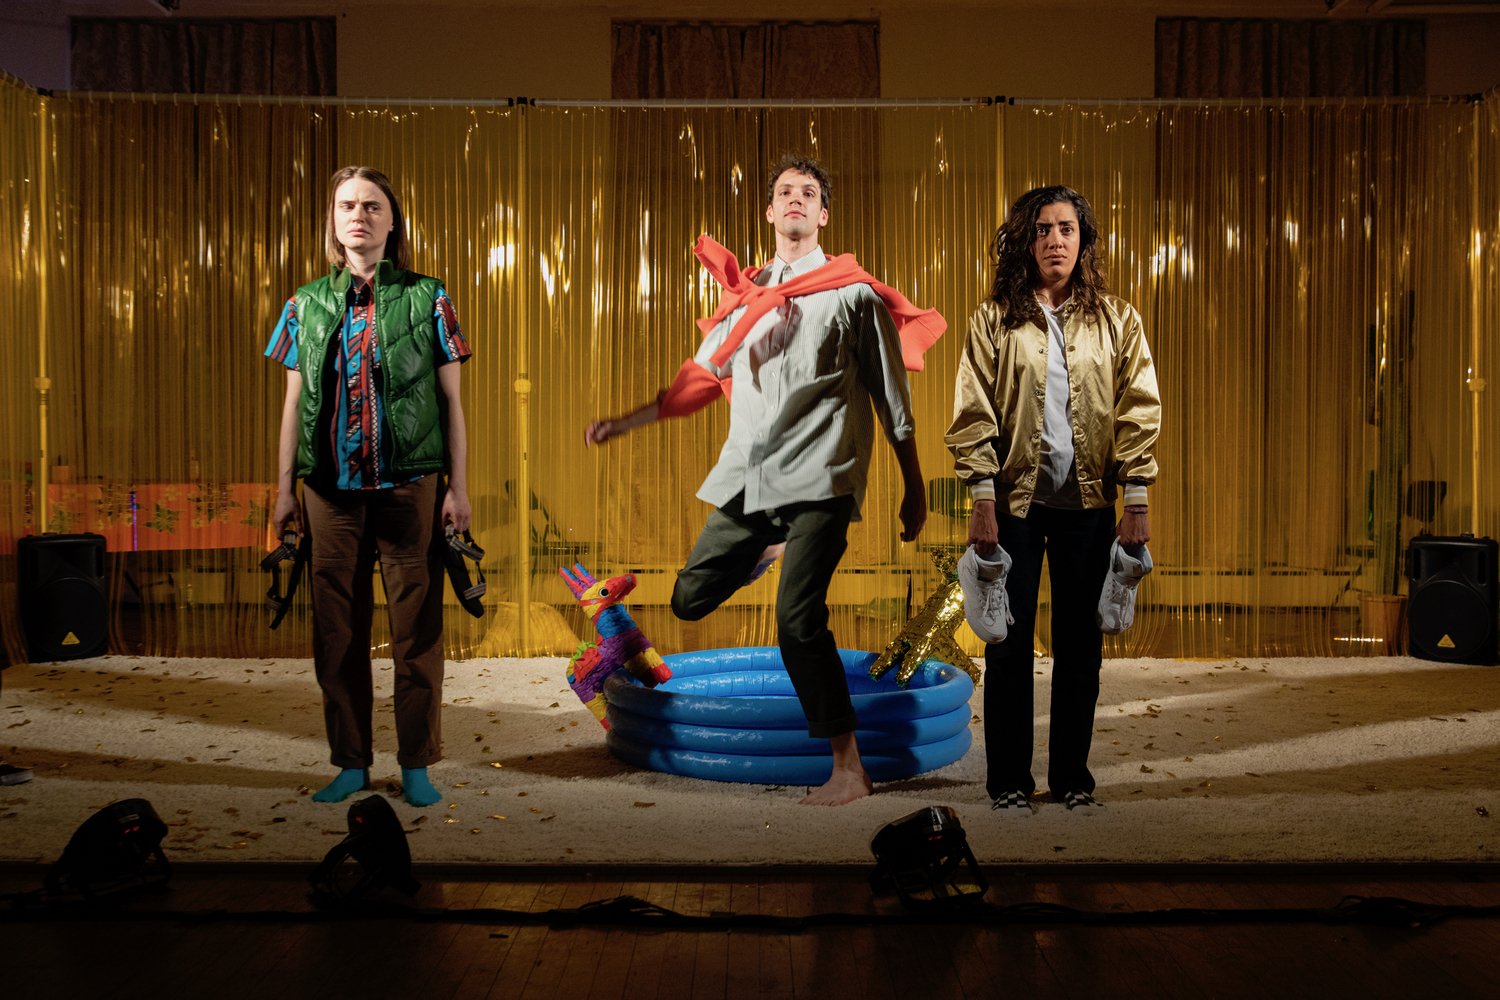 BWW Review: Queer Consciousness and Hella Life Lessons Drive BRIEF CHRONICLE, BOOKS 6-8 at Access Theater